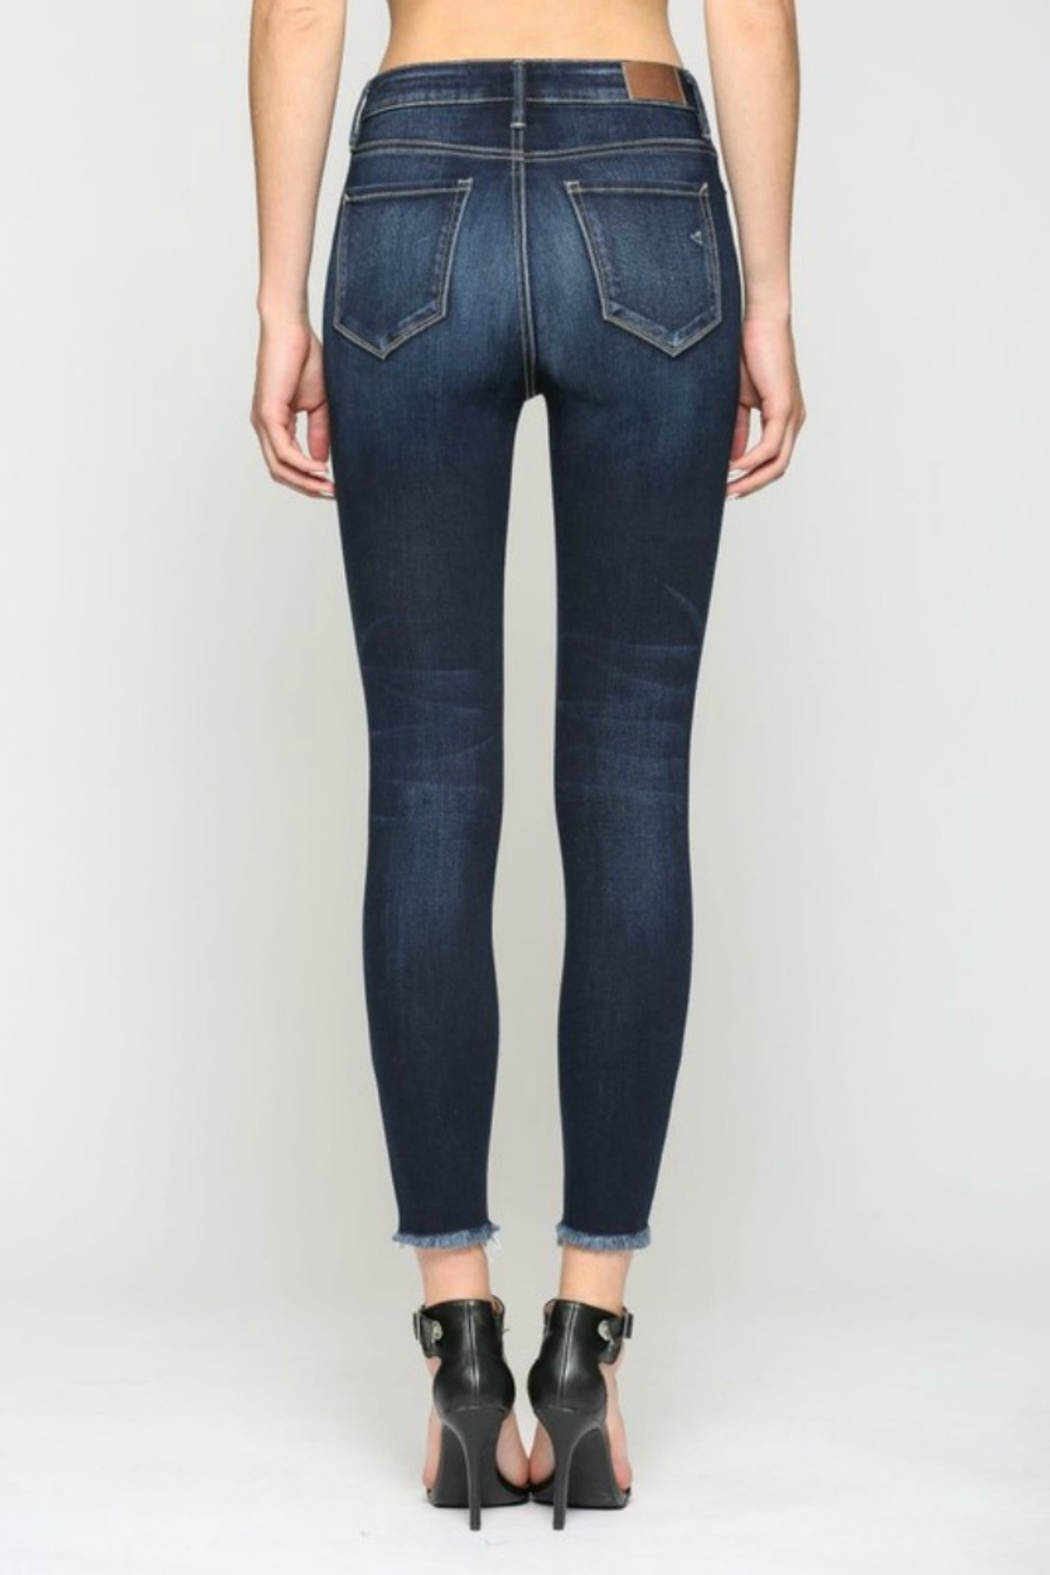 Hidden Jeans TAYLOR HIGH RISE DARK - Side Cropped Image